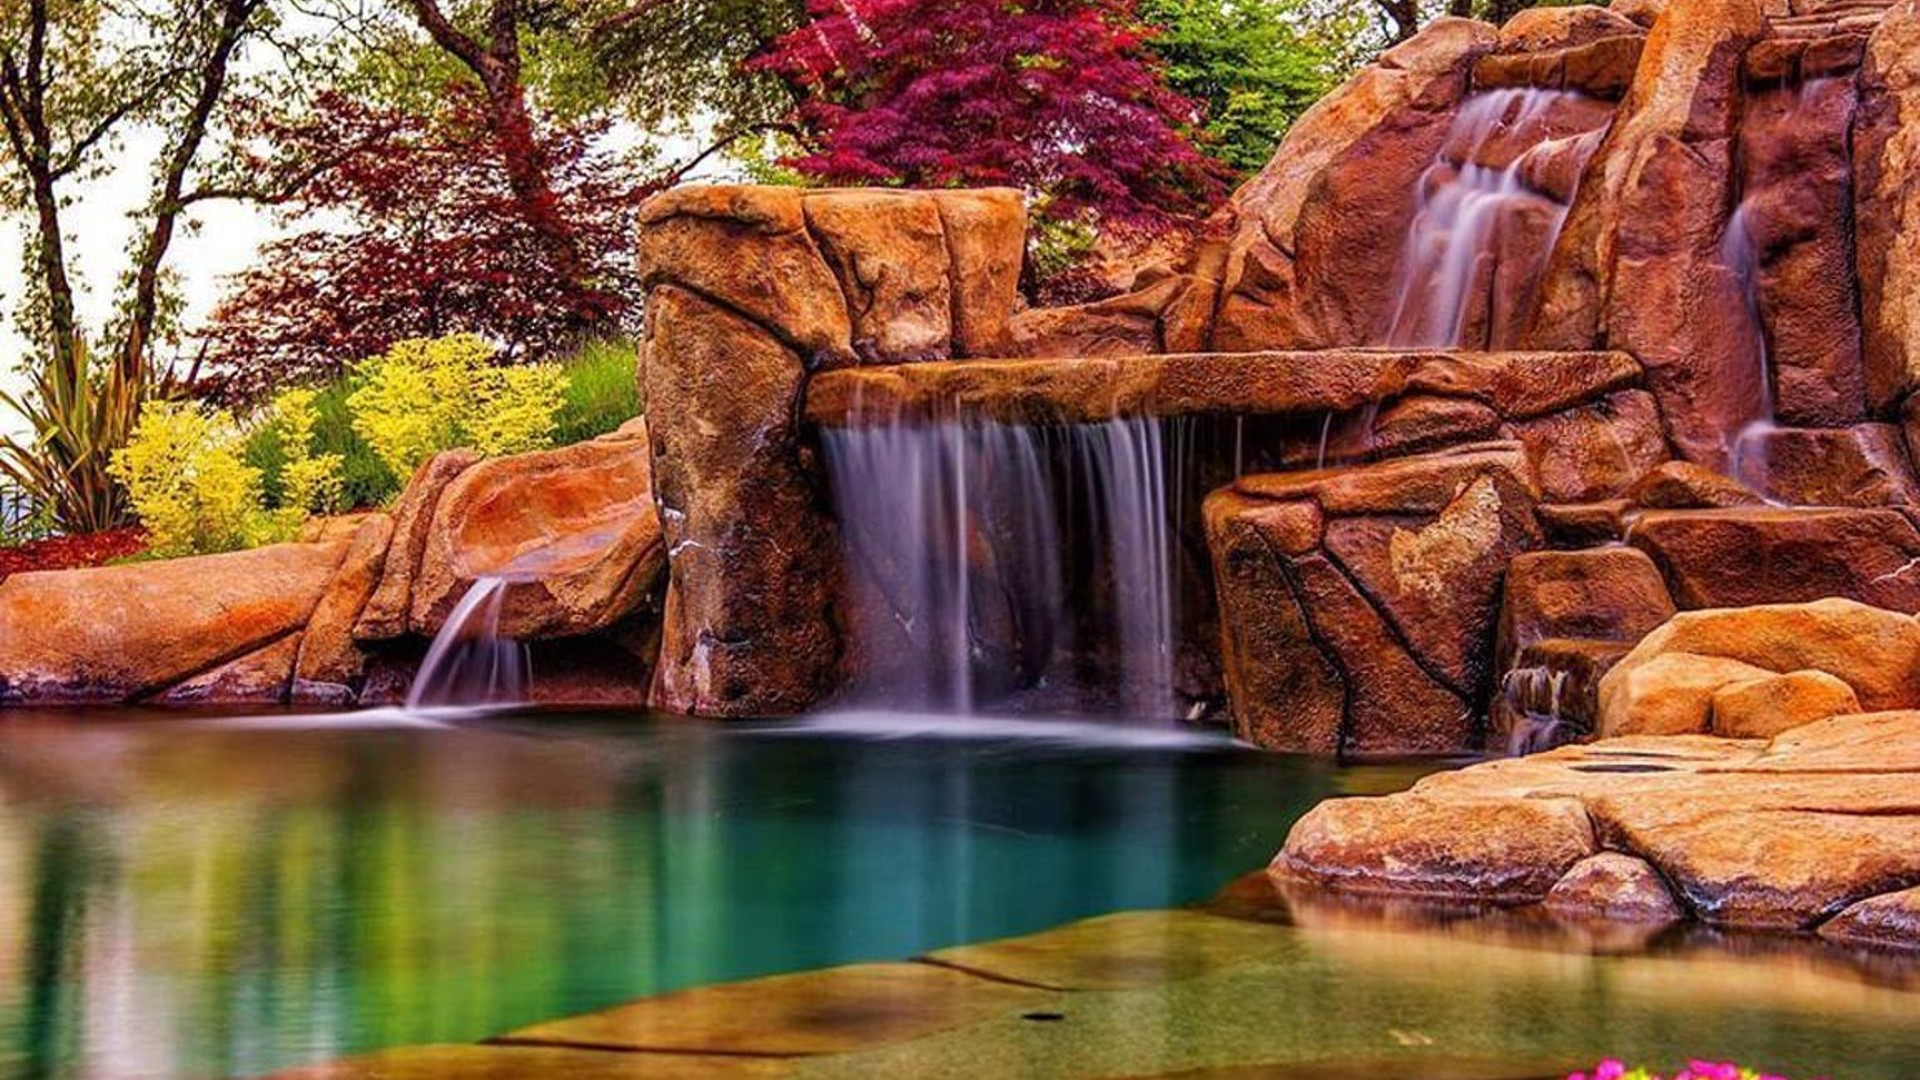 HD Wallpapers Of Beautiful Places